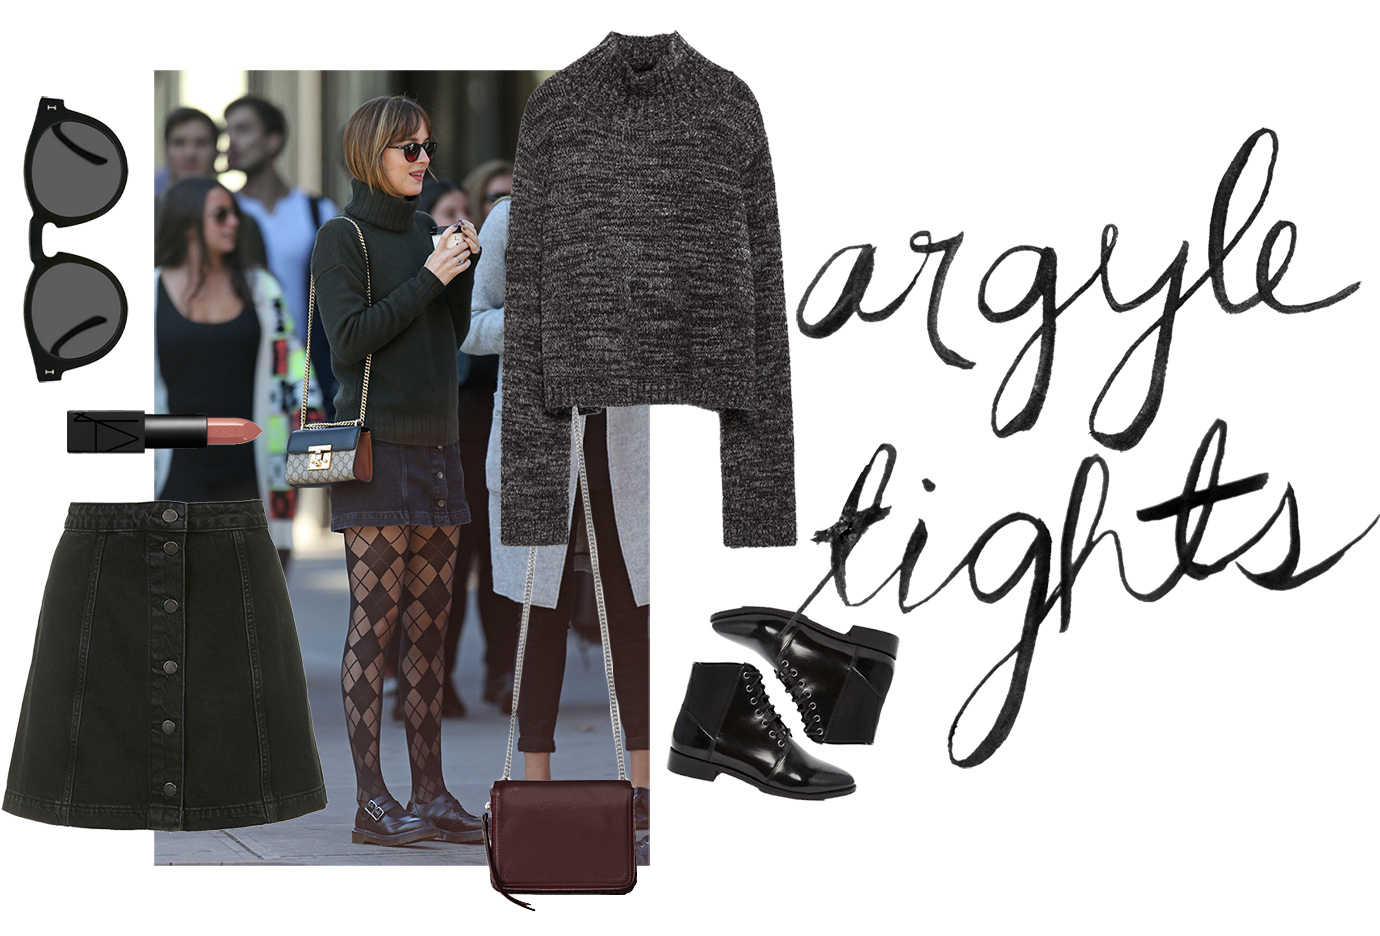 alice olivia, argyle tights, dakota johnson, street style, celebrity style, printed tights